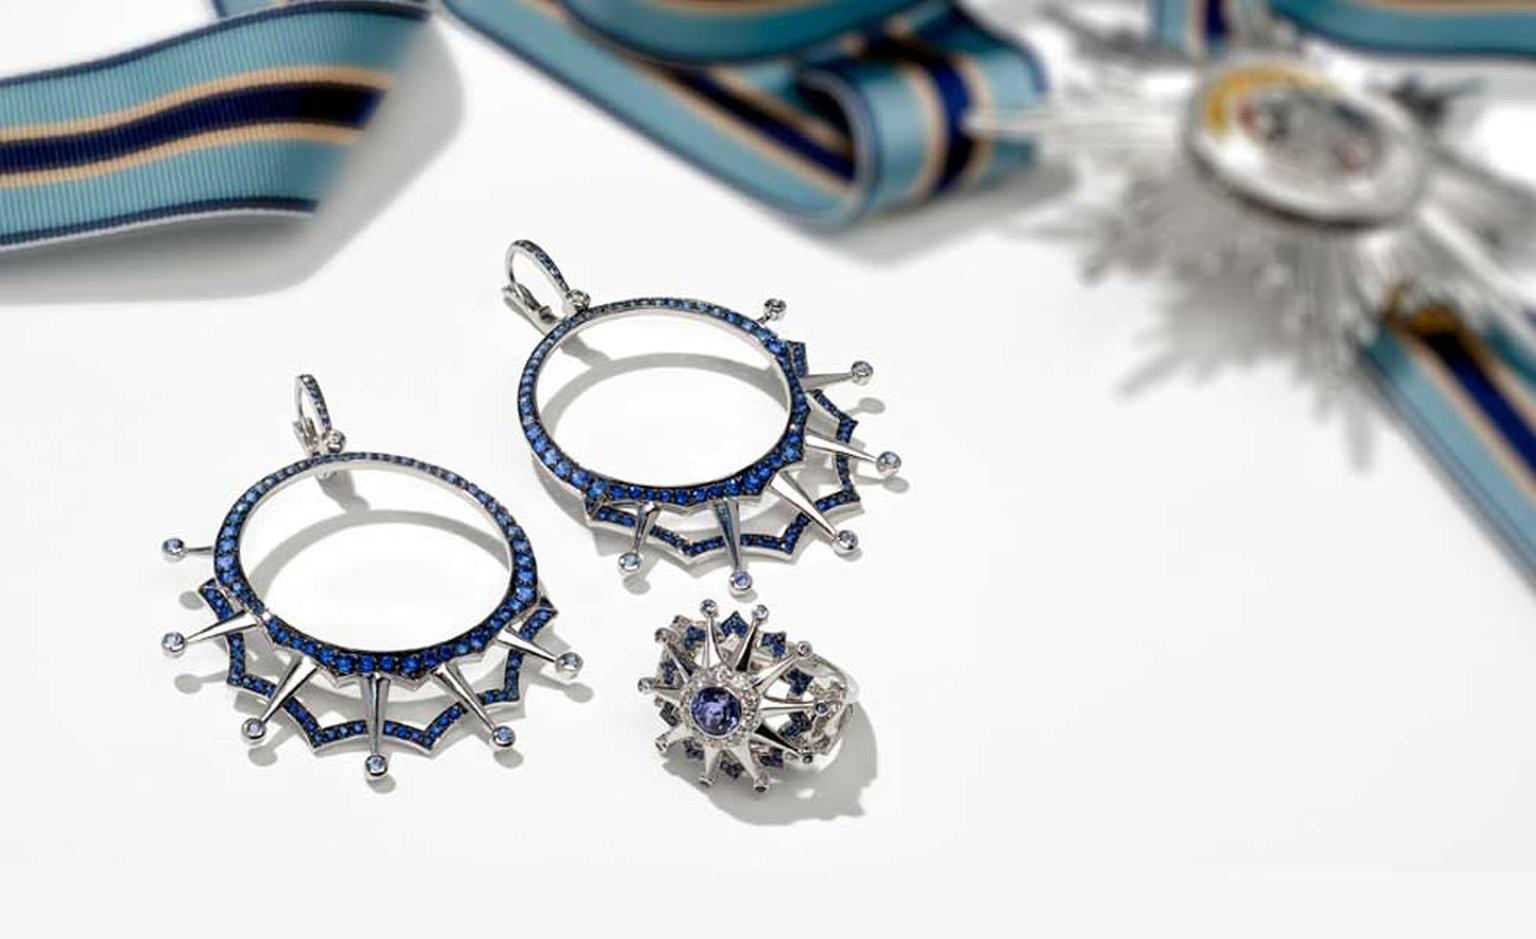 Garrard Star and Garter collection blackened white gold and sapphire drop hoop earrings and white gold ring featuring diamonds, sapphires and tanzanites.